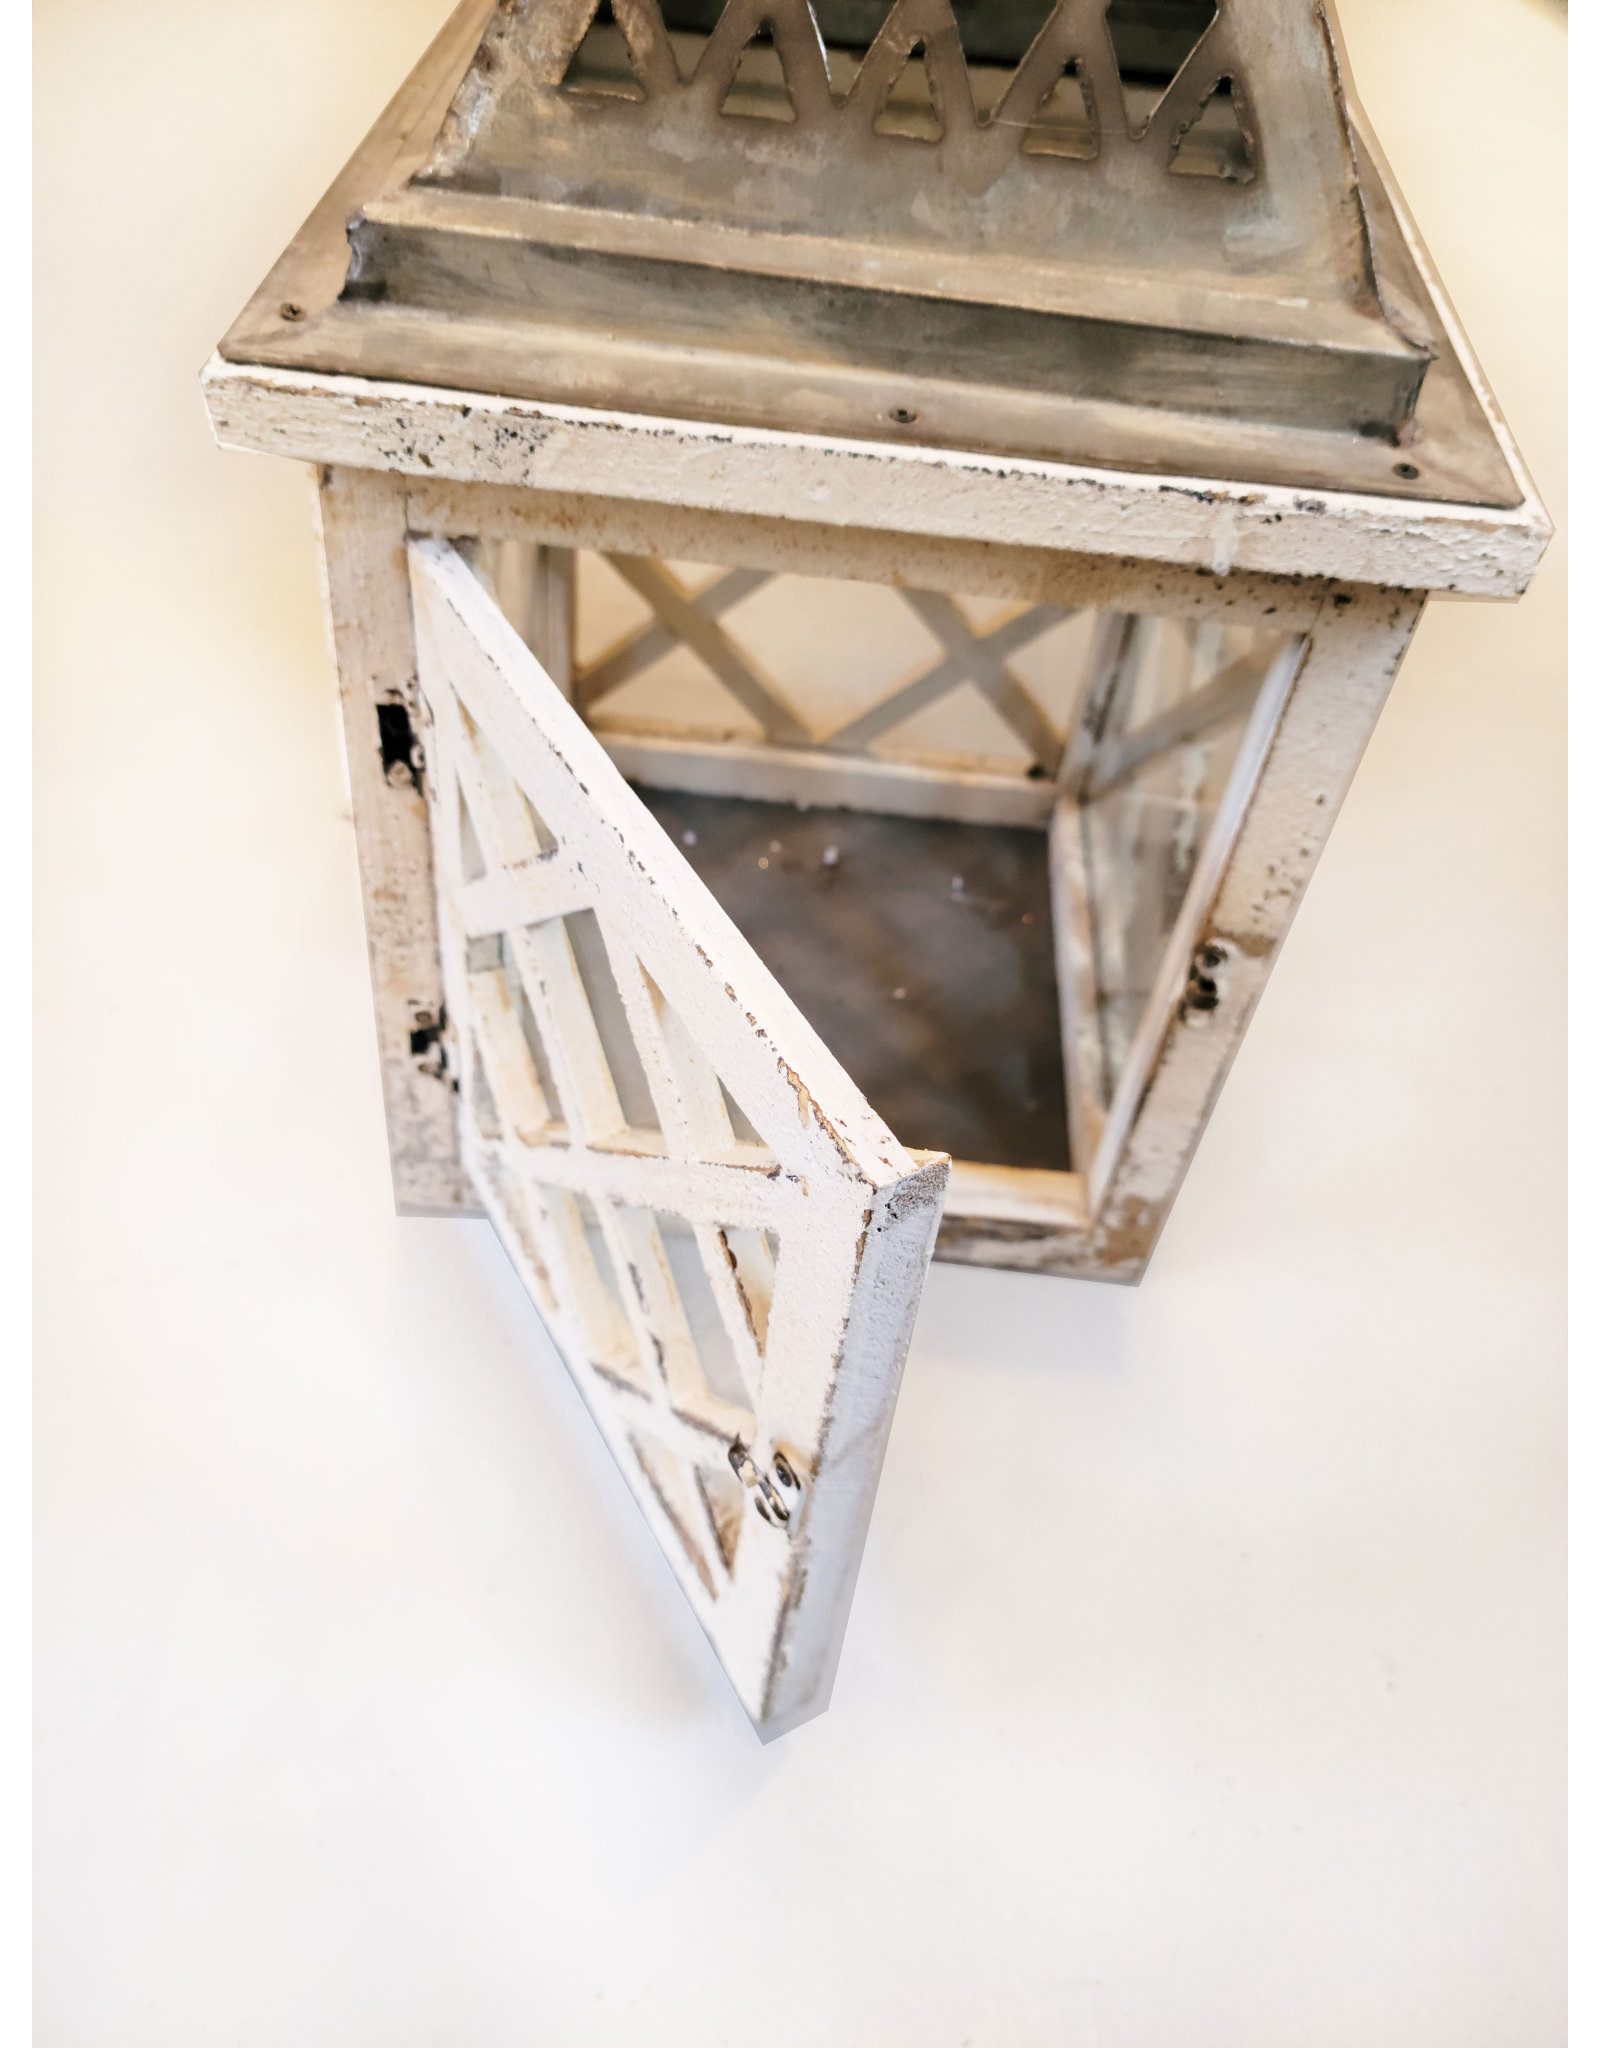 One Hundred 80 Degrees White and Silver Distressed Wood Lantern